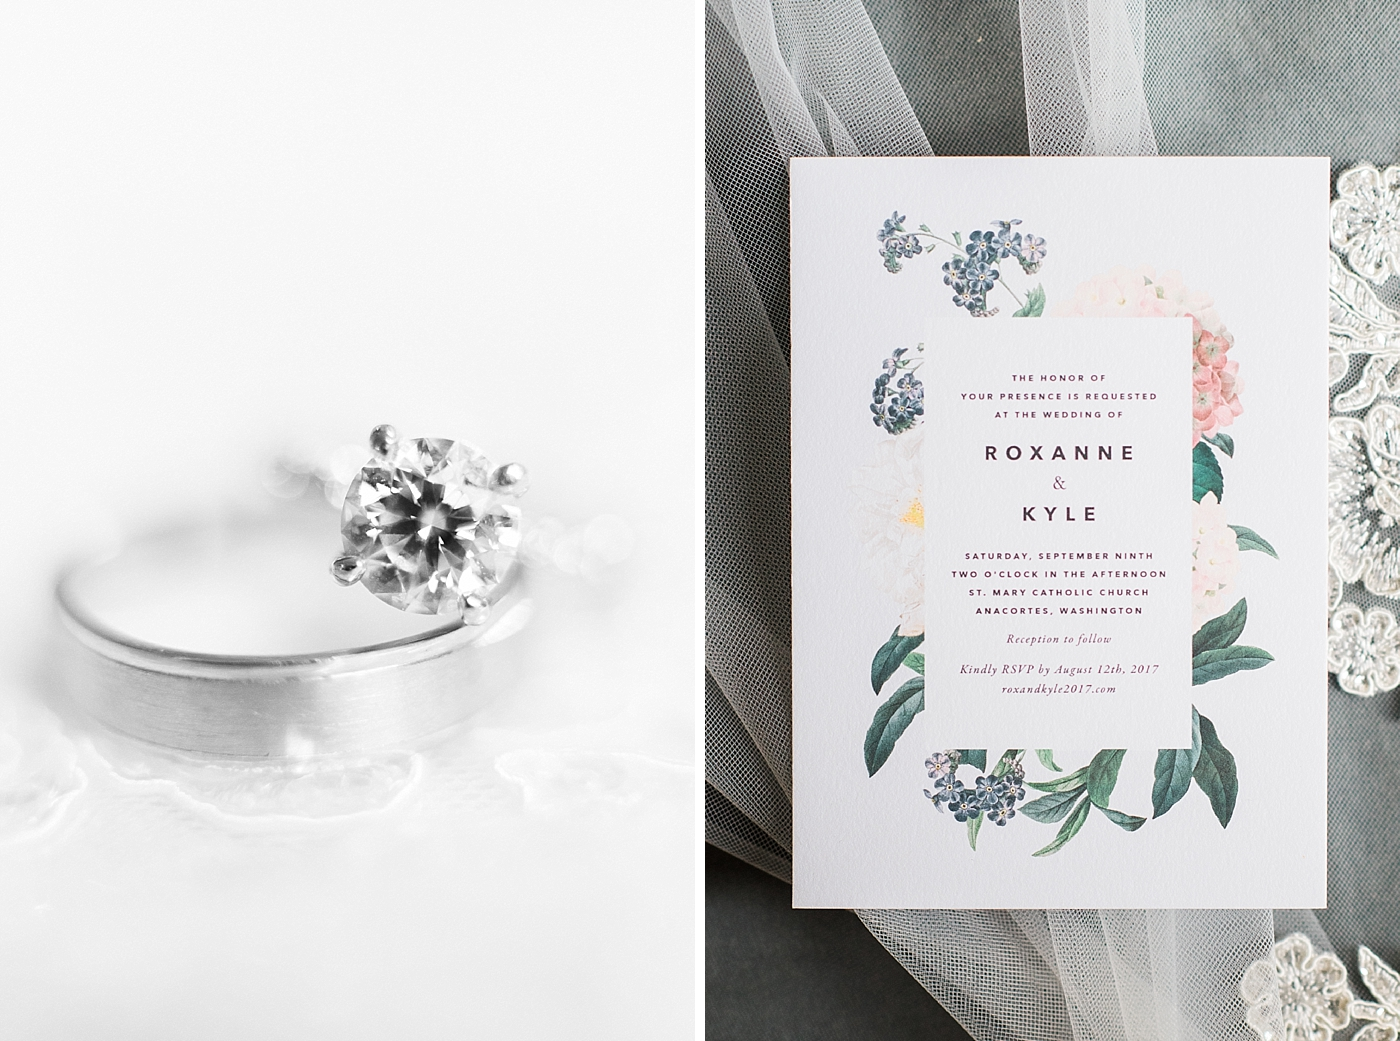 Anchorets Wedding Details including stationary and bridal rings